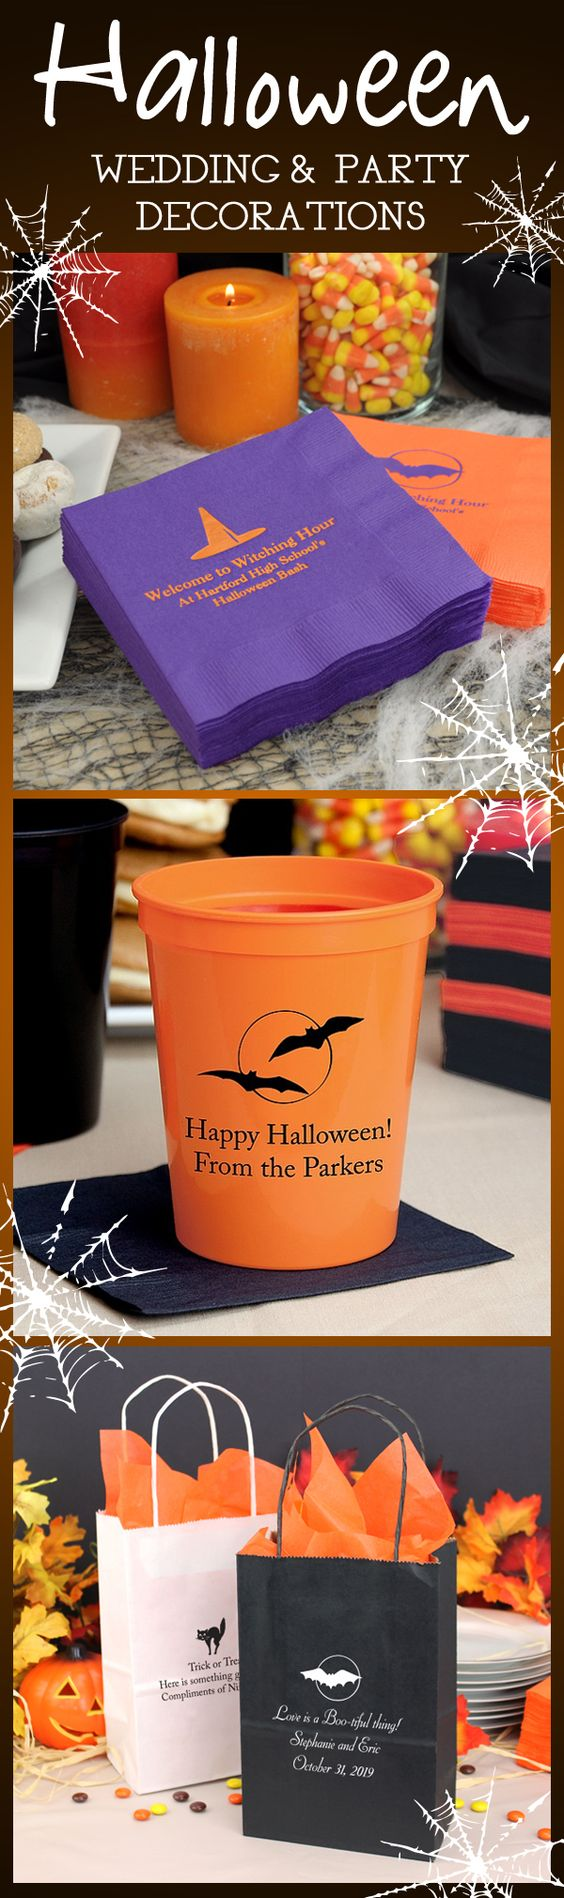 Personalized Halloween wedding decorations and party favors will ...